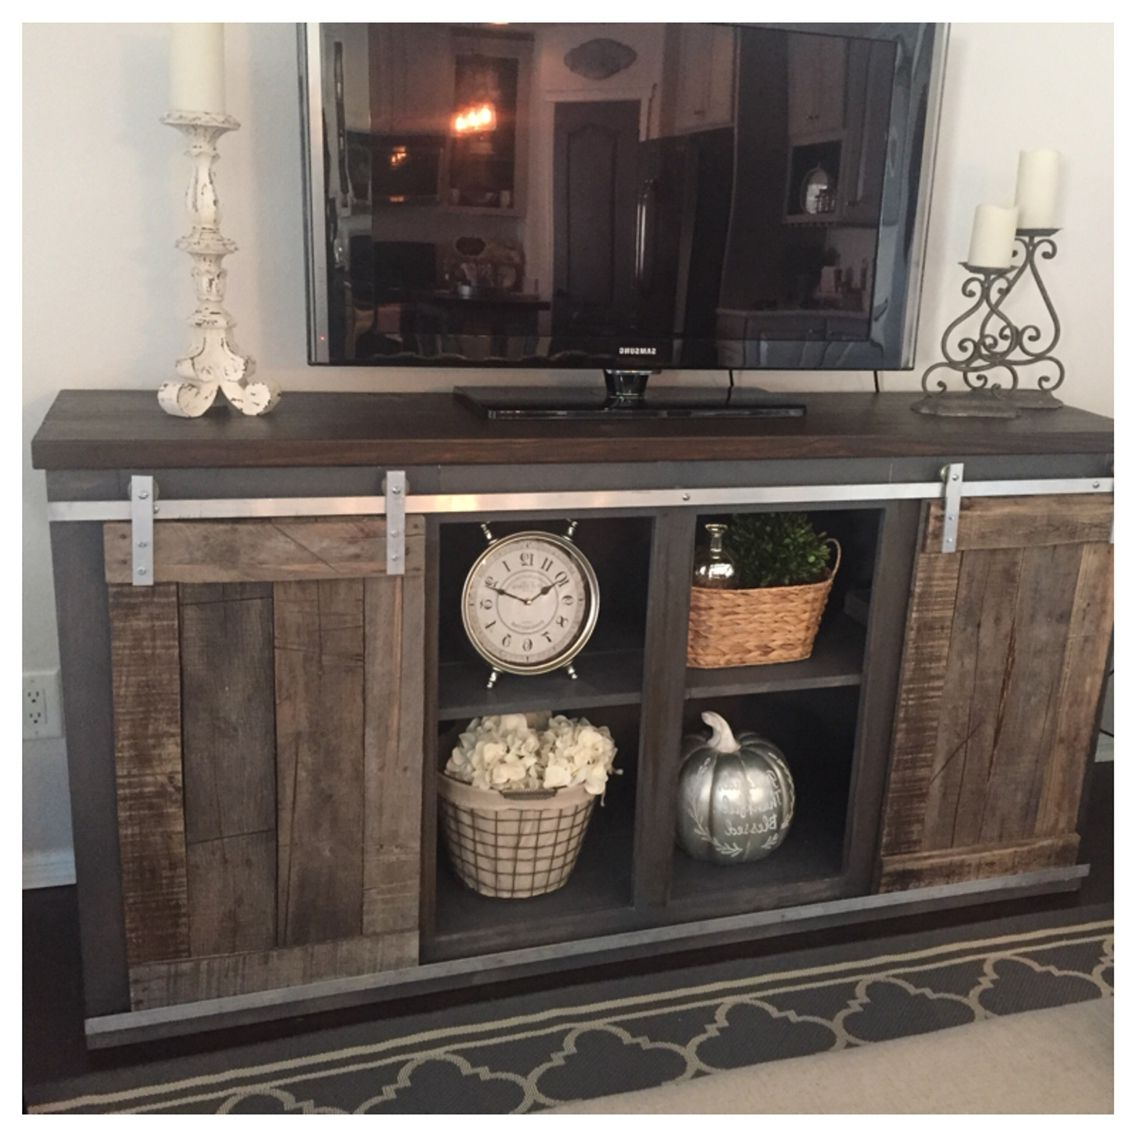 Sliding Barn Door Tv Stand White Rustic With Mount Farmhouse Plans Intended For 2017 White Rustic Tv Stands (View 18 of 20)